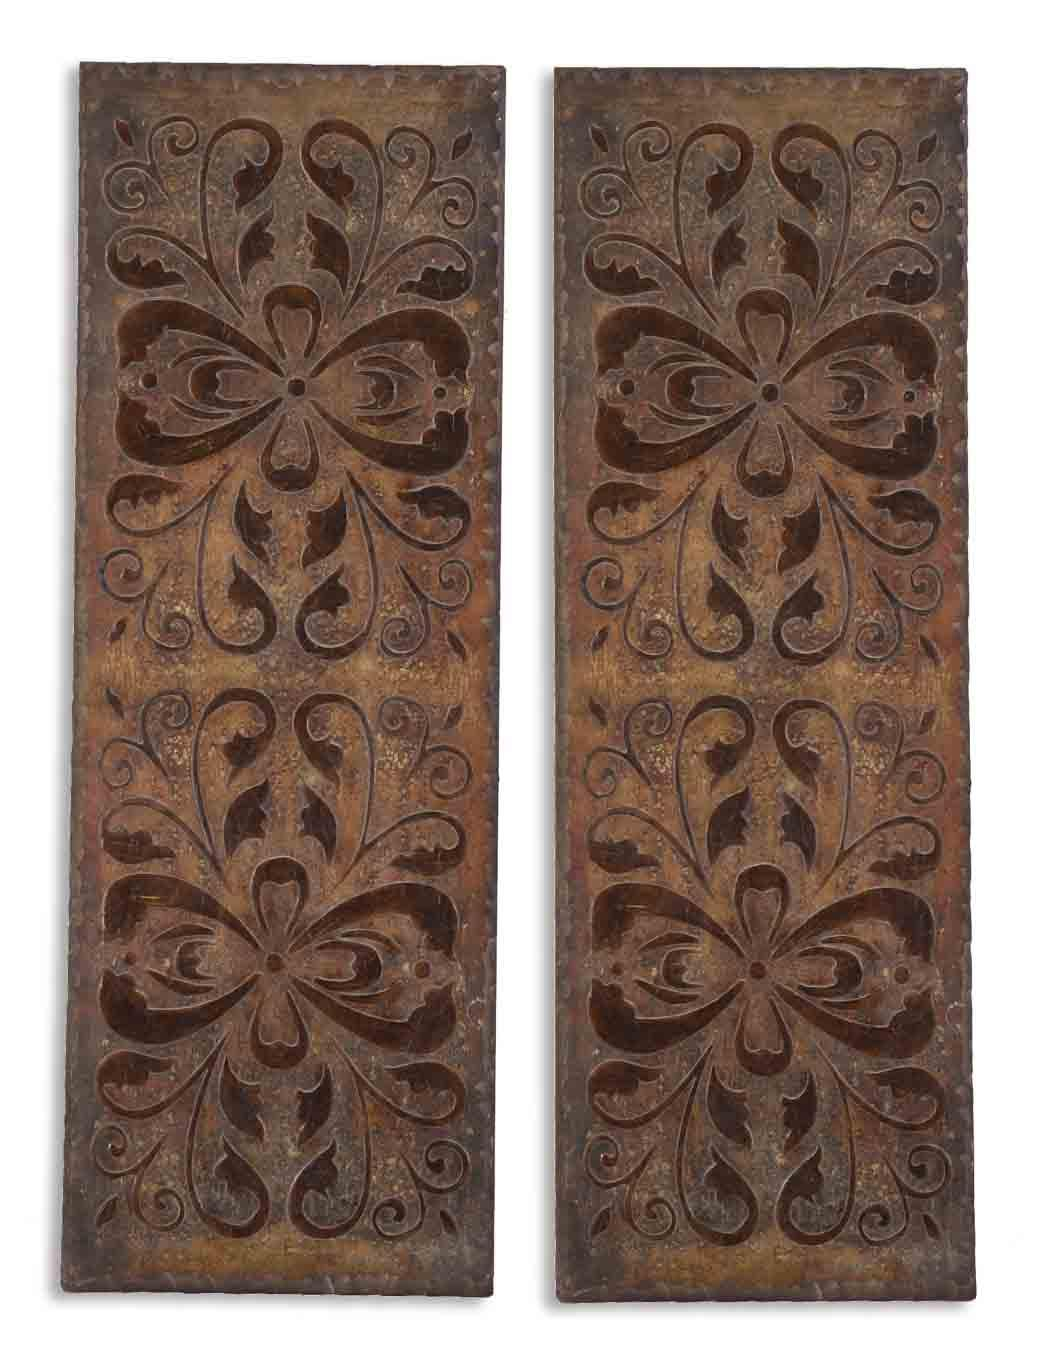 Uttermost Alternative Wall Decor Alexia Panels Set of 2 - Item Number: 13643